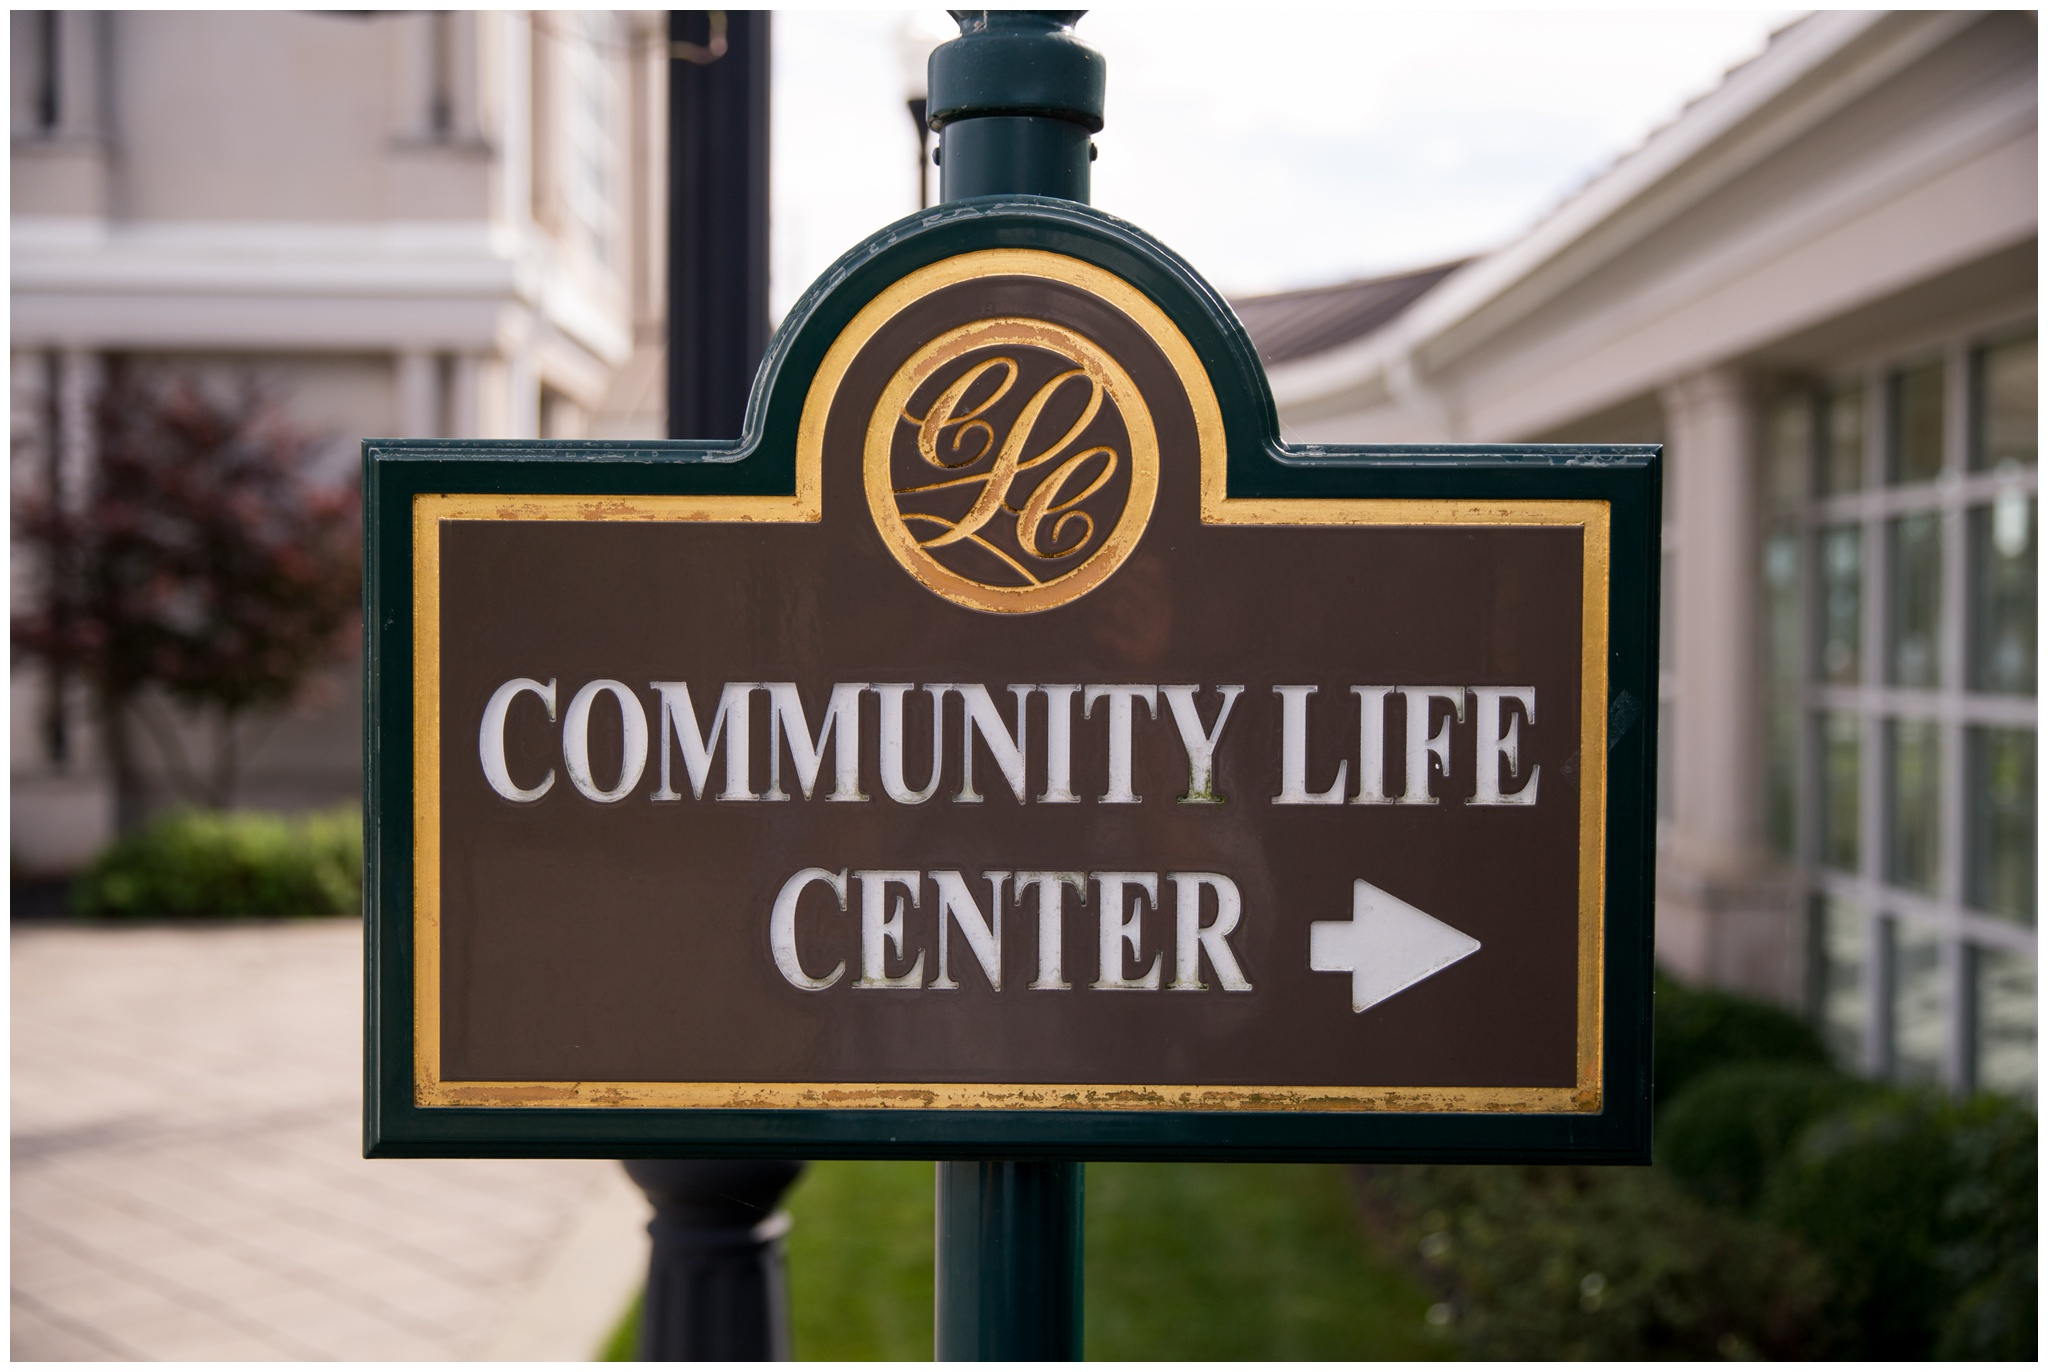 sign for Community Life Center in Indianapolis Indiana